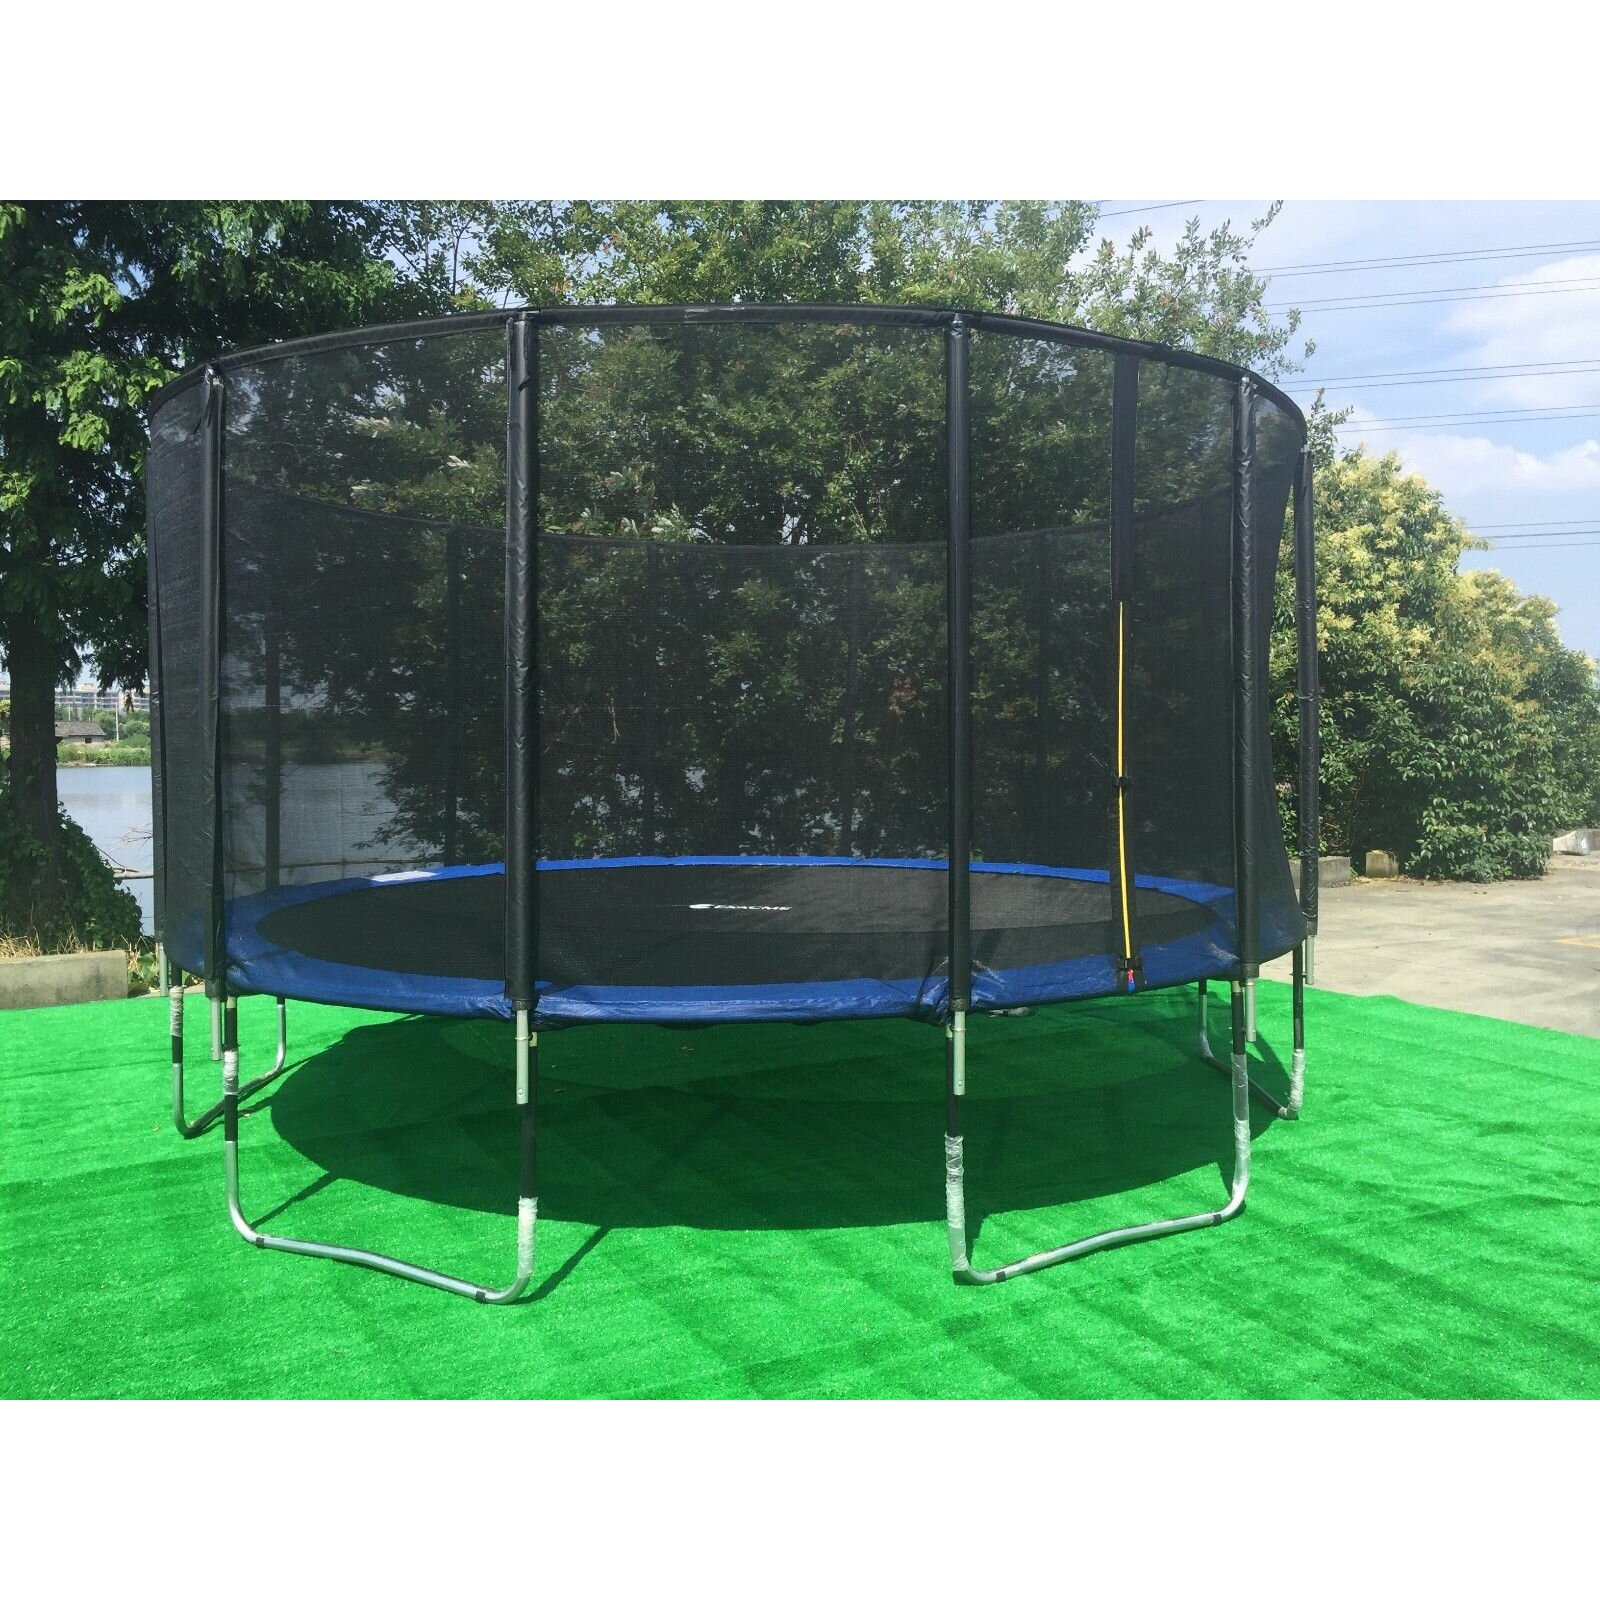 Kidwise Jumpfree 15 Ft Trampoline And Safety Enclosure: Newacme LLC 15' Round Trampoline With Safety Enclosure